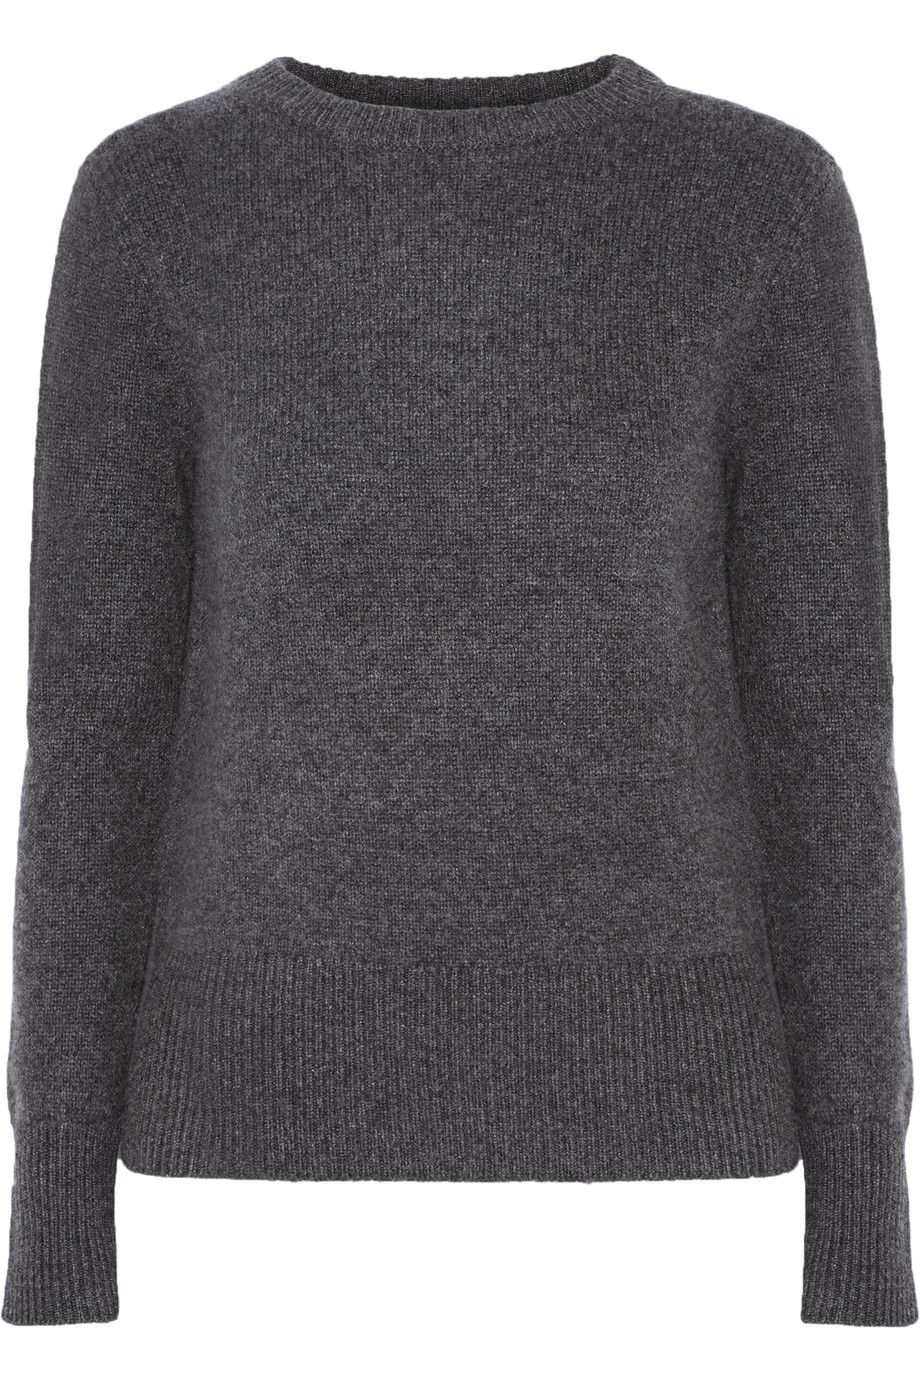 Shop on-sale Theory Salomay cashmere sweater. Browse other ...